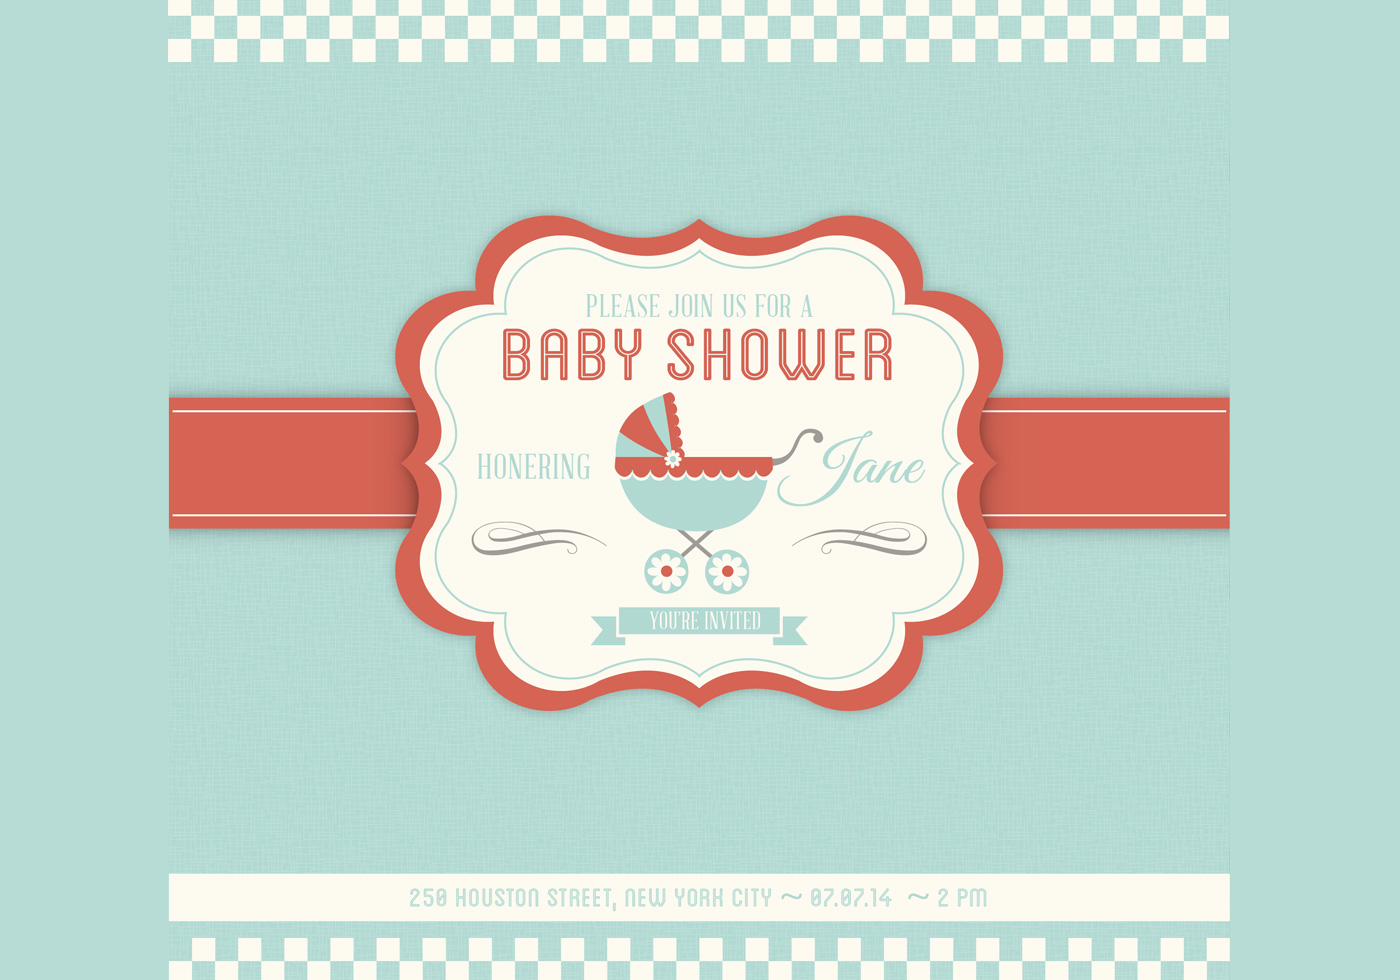 Baby shower psd invitation template free photoshop brushes at baby shower psd invitation template free photoshop brushes at brusheezy buycottarizona Gallery